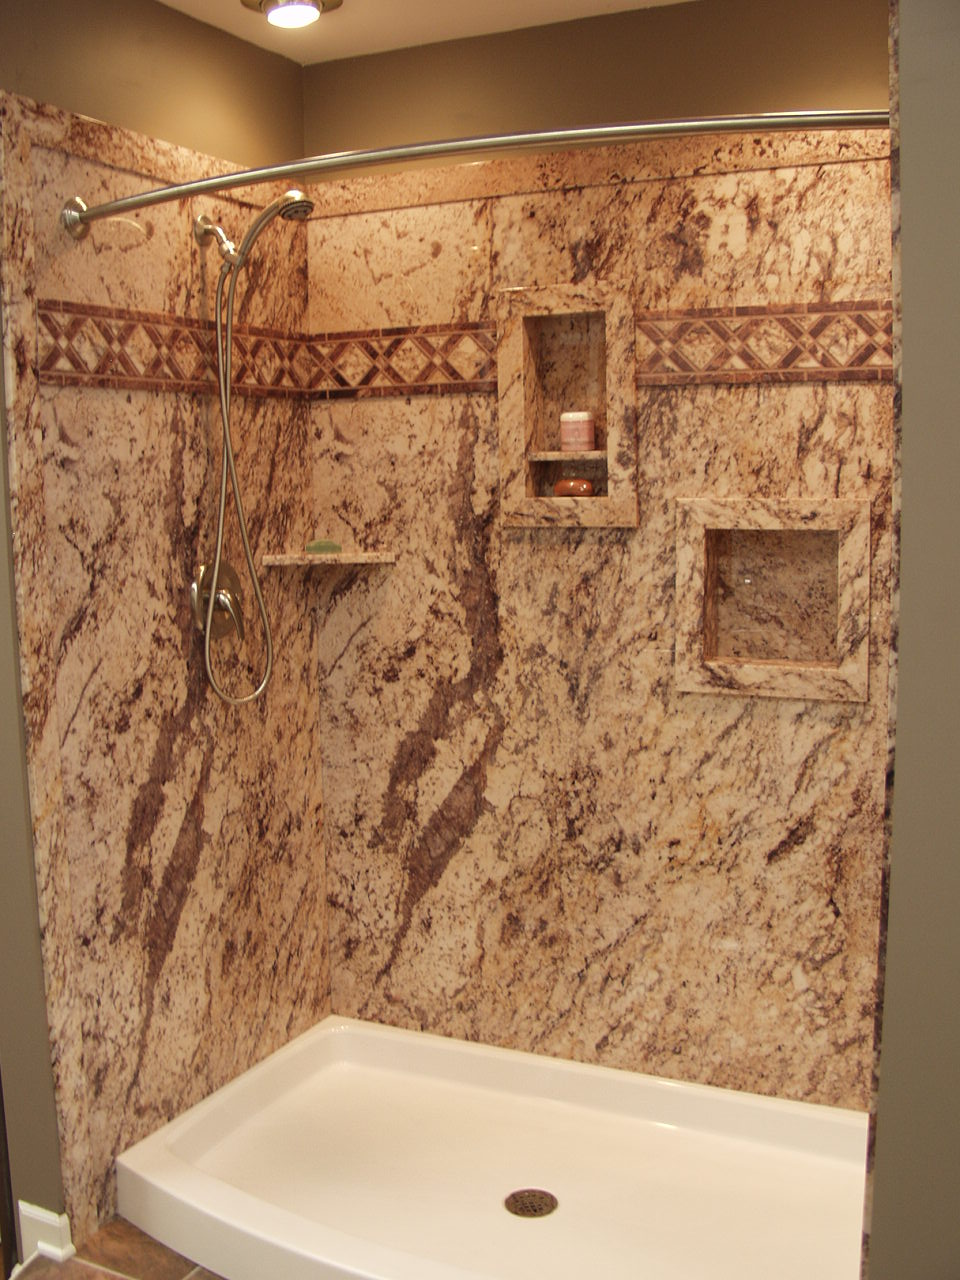 Tile For Bathroom Shower Walls Are Shower Wall Panels Cheaper Than Tile 7 Factors You Need To Know